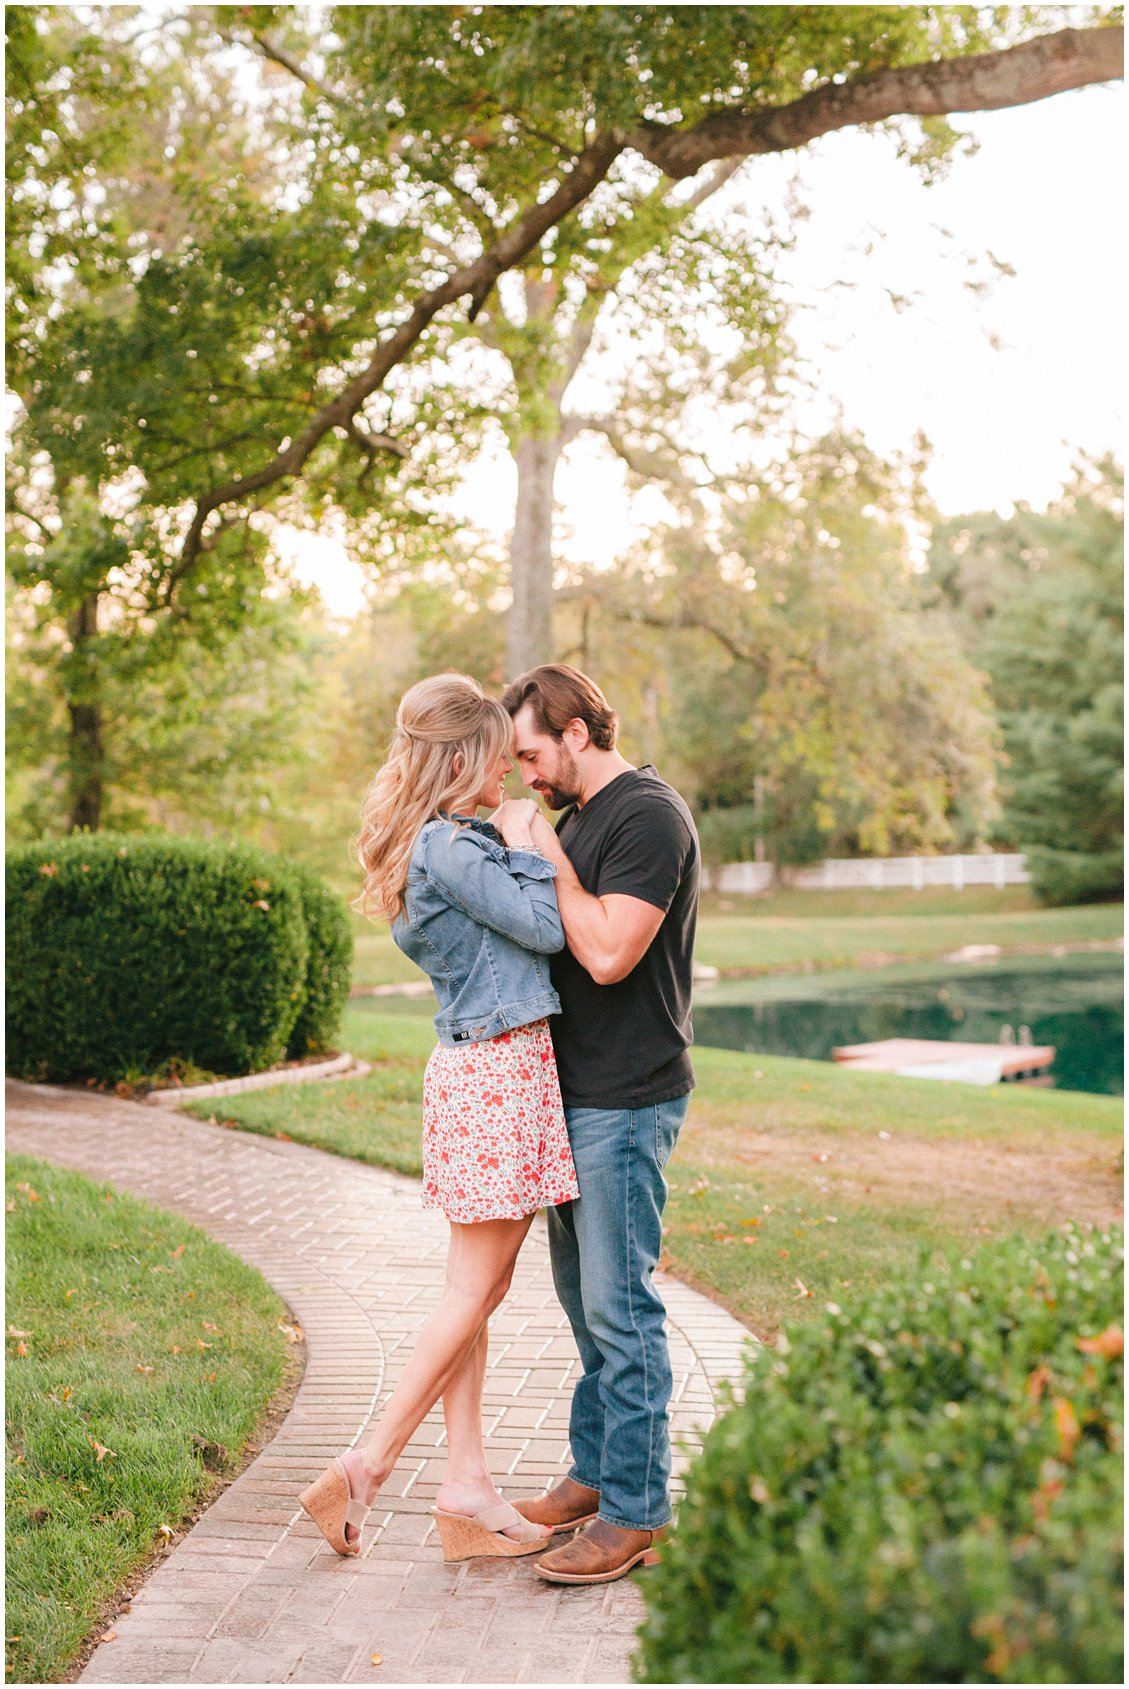 A romantic, natural engagement session with a champagne picnic in St Louis Missouri